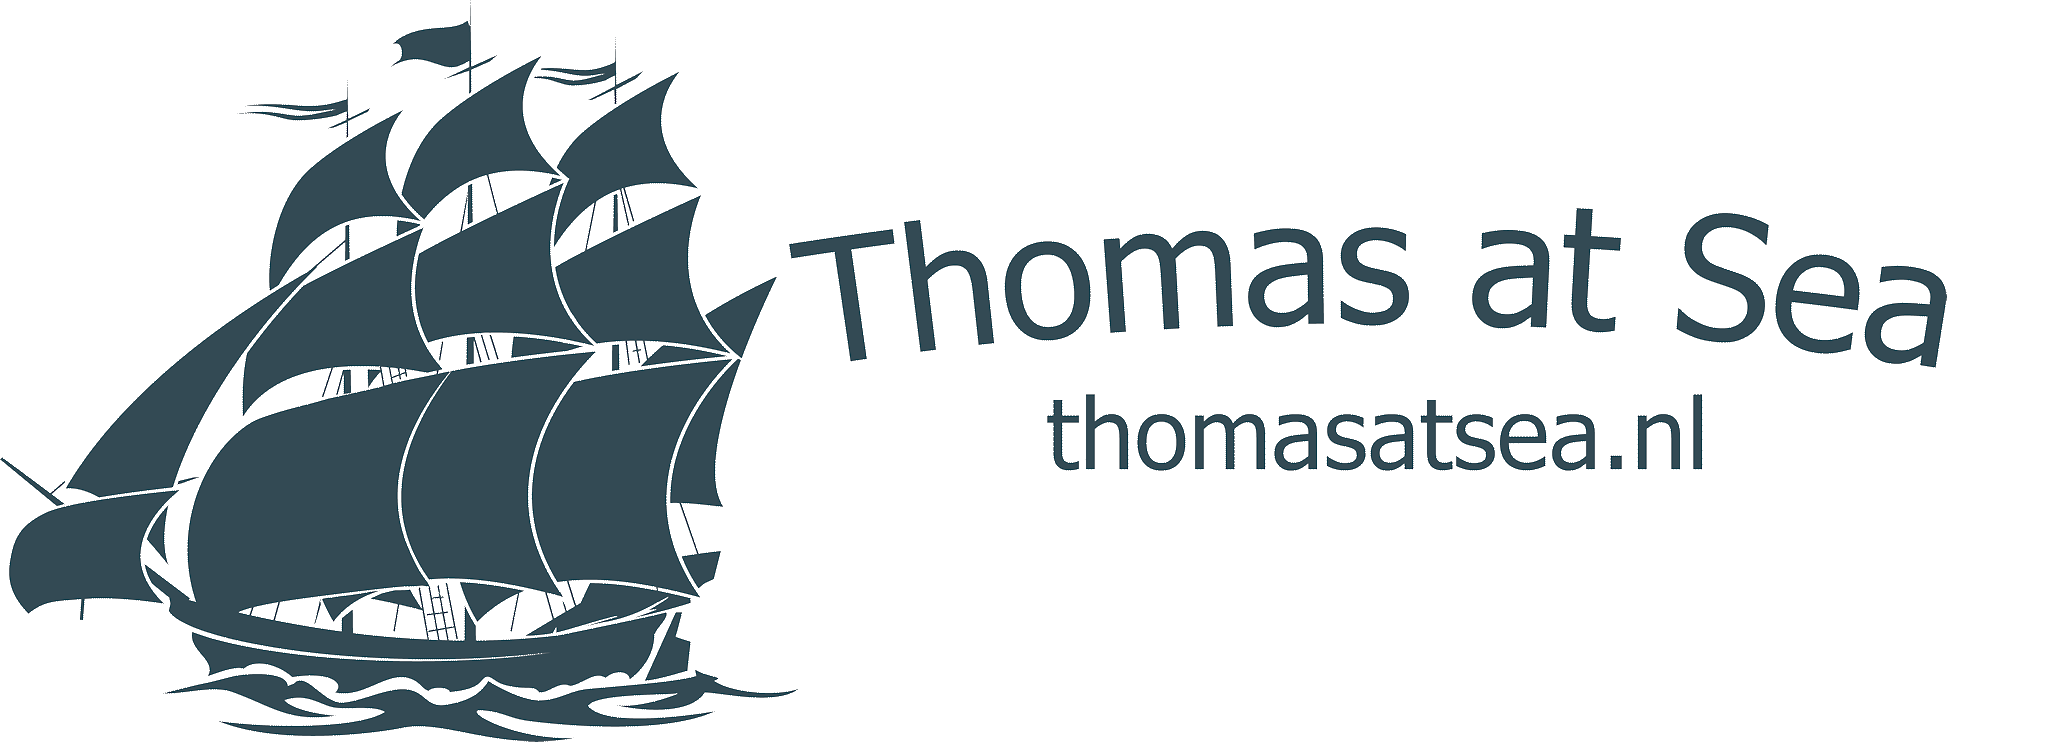 Thomas at Sea logo